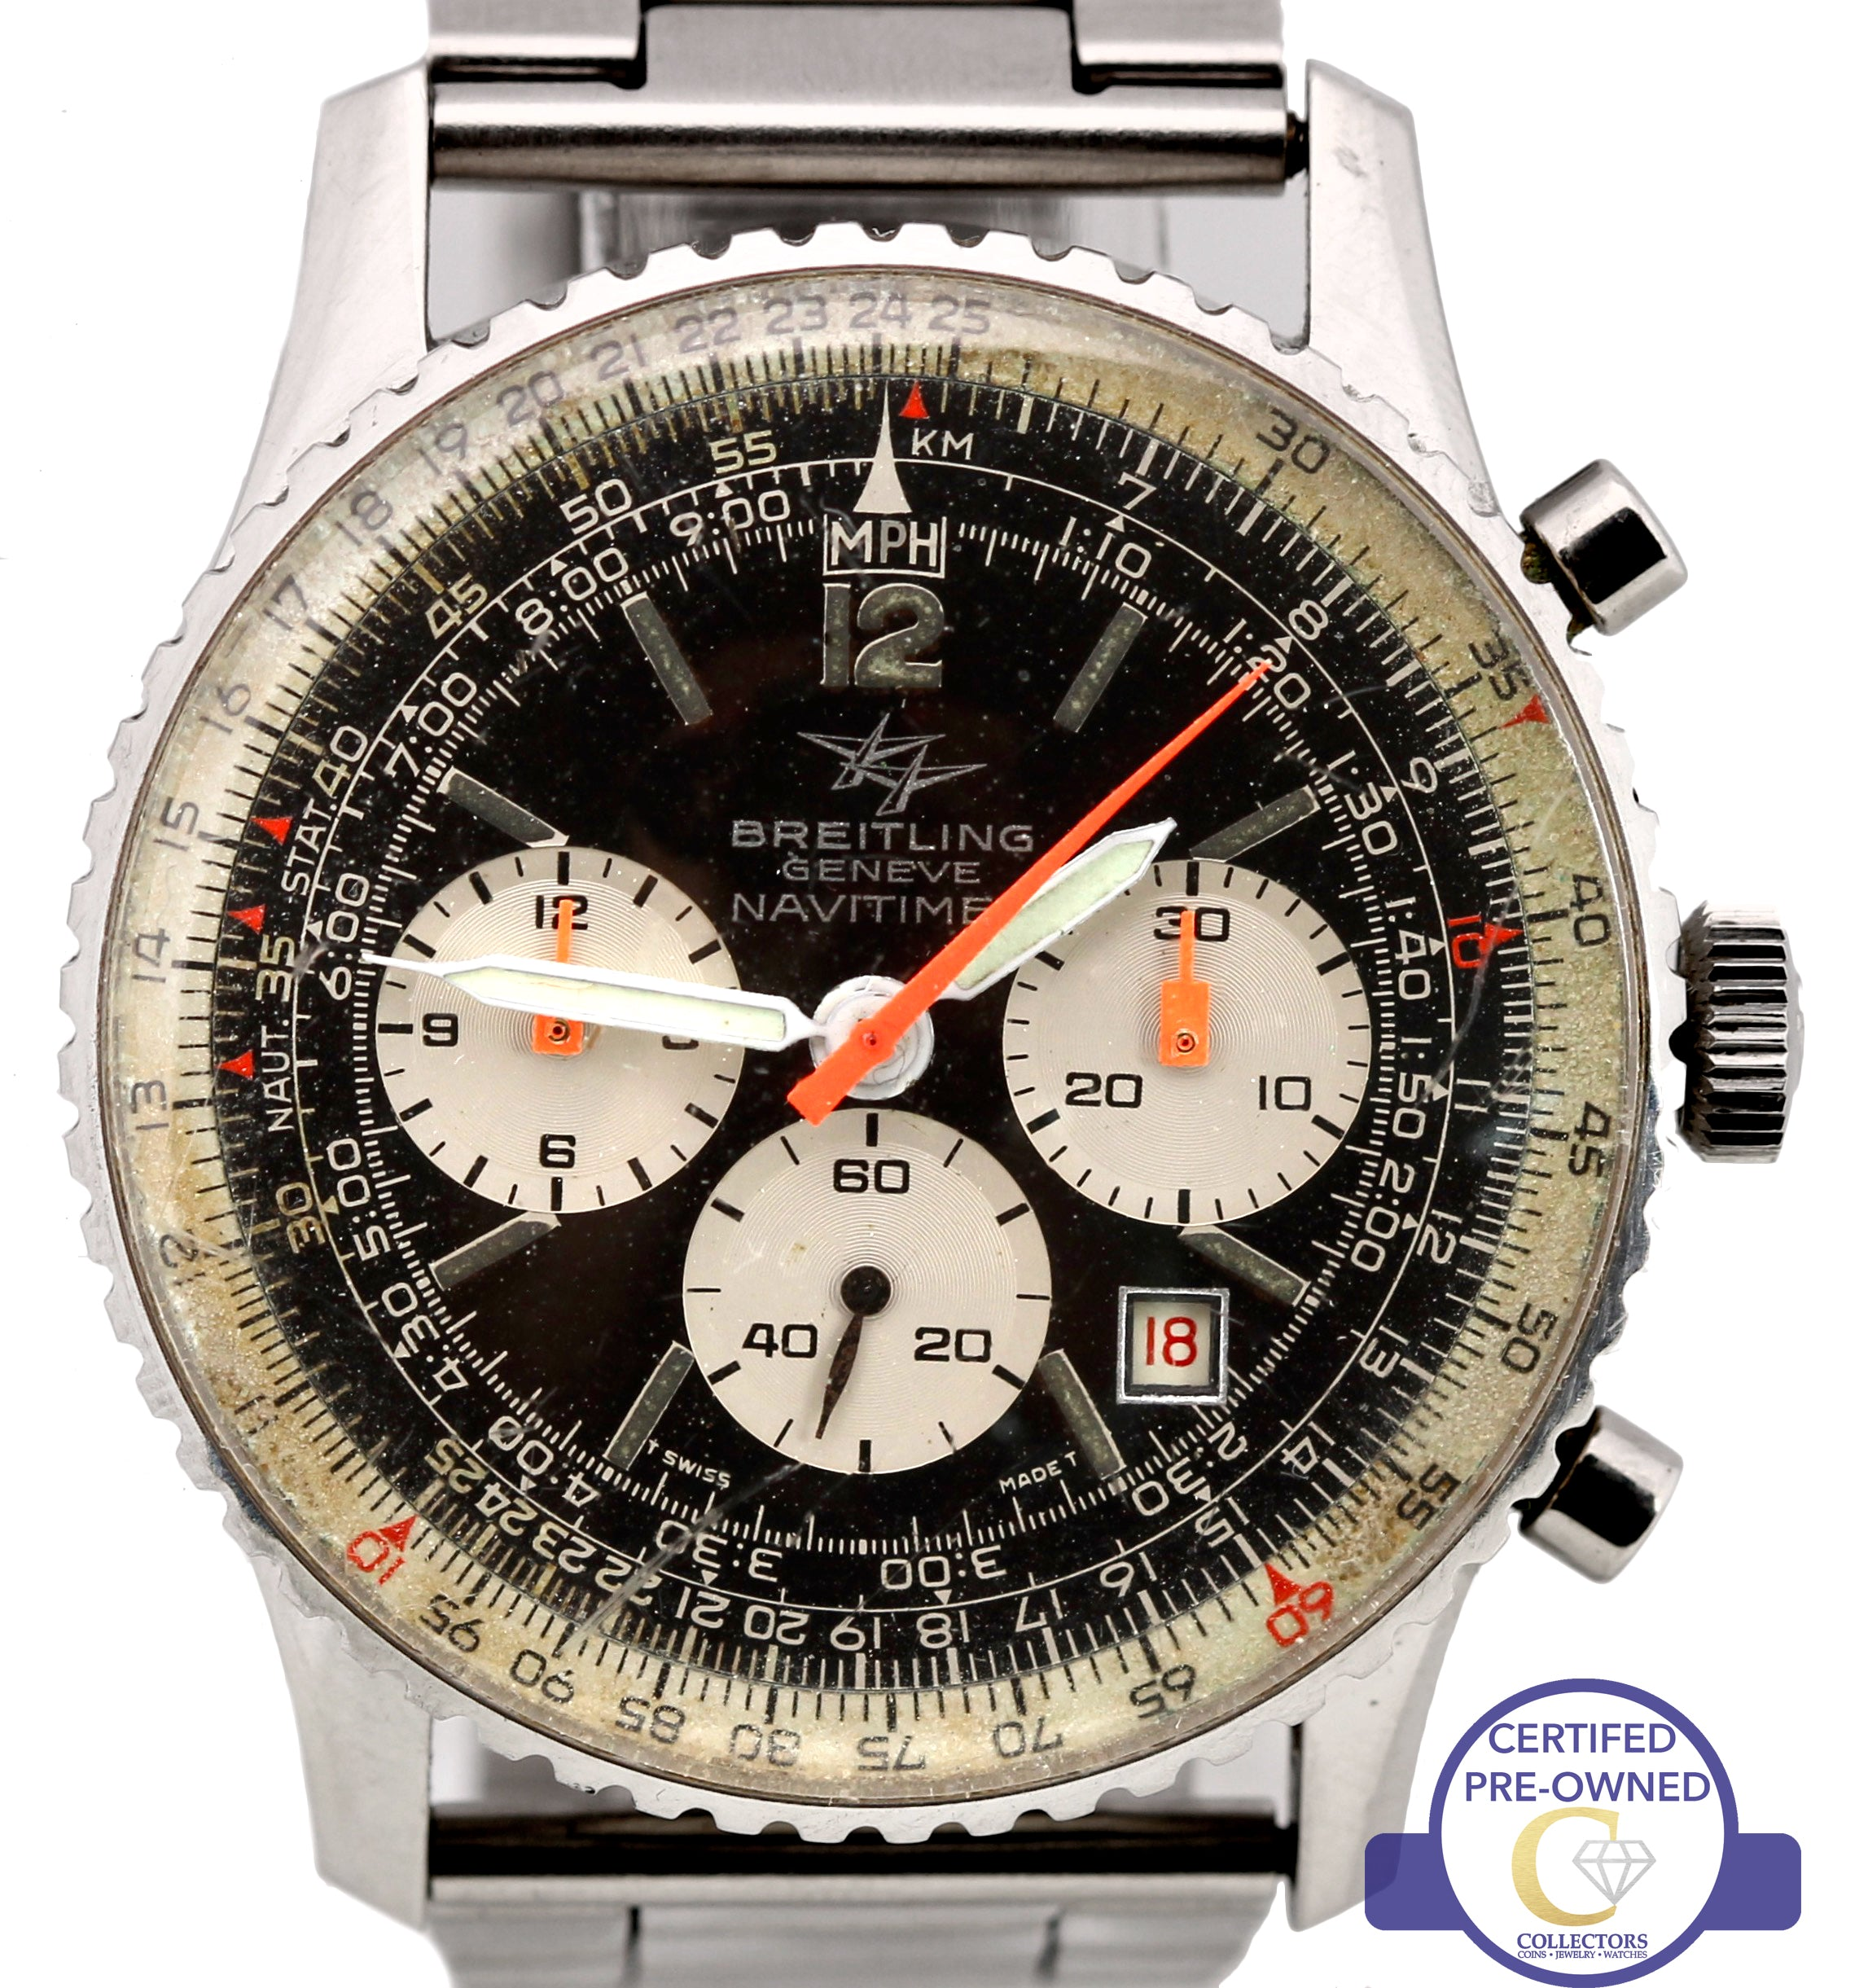 Vintage Breitling Navitimer Chronograph Black 41mm Stainless Steel 8808 Watch